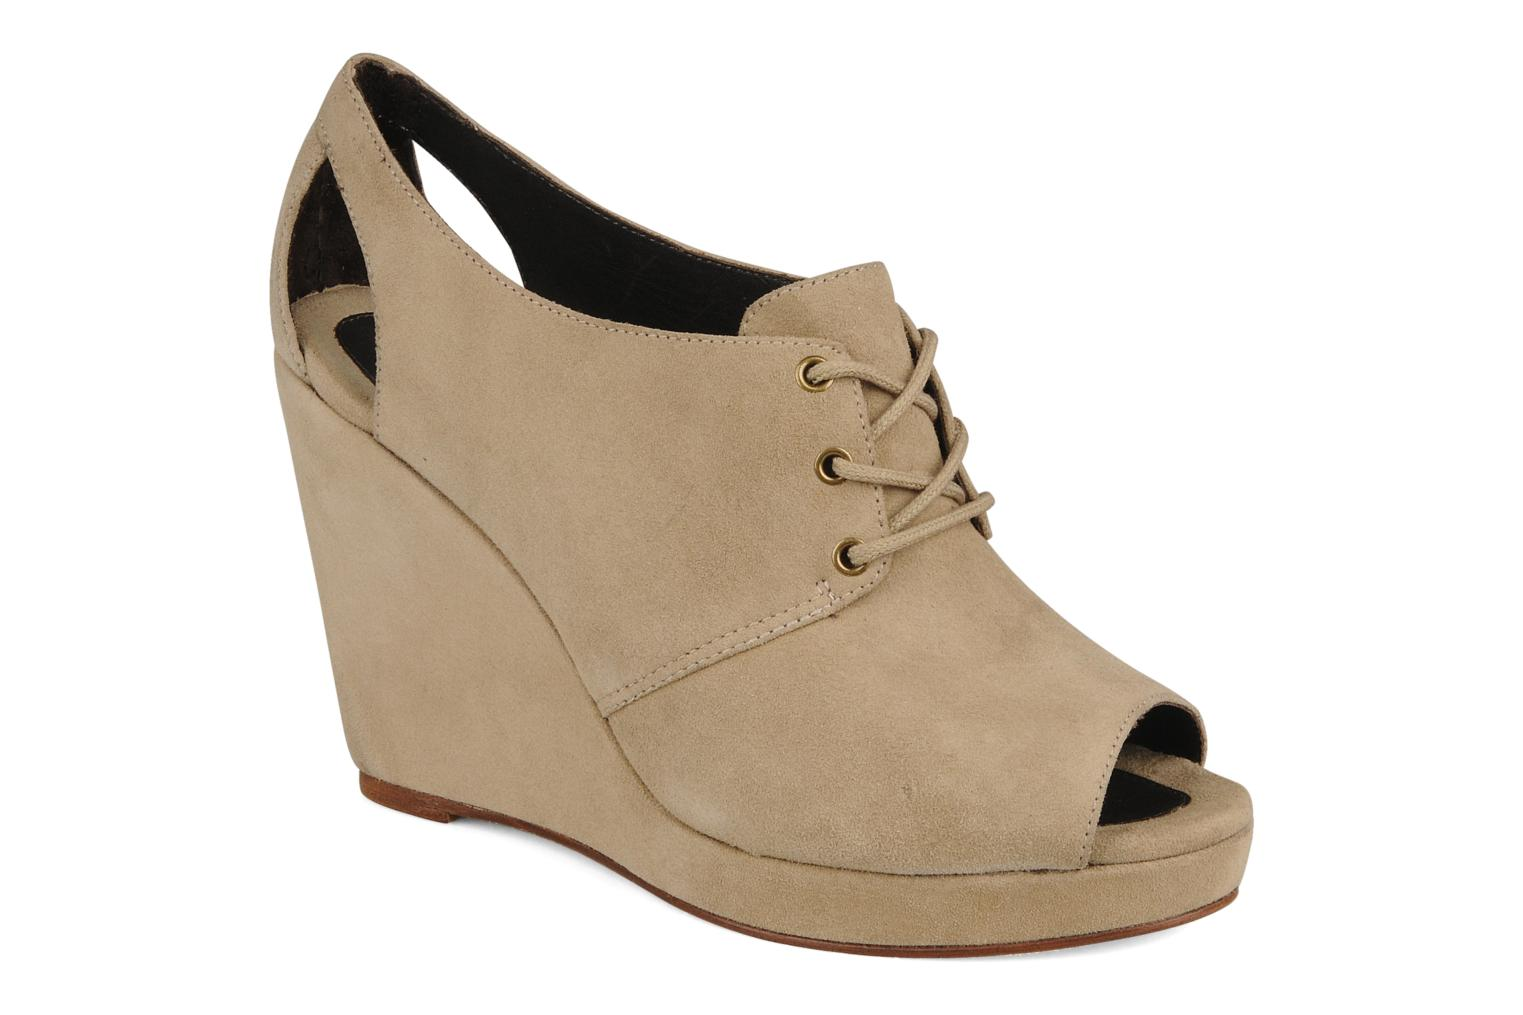 Tila March Wedge derby Beige hgf4hfUDz8